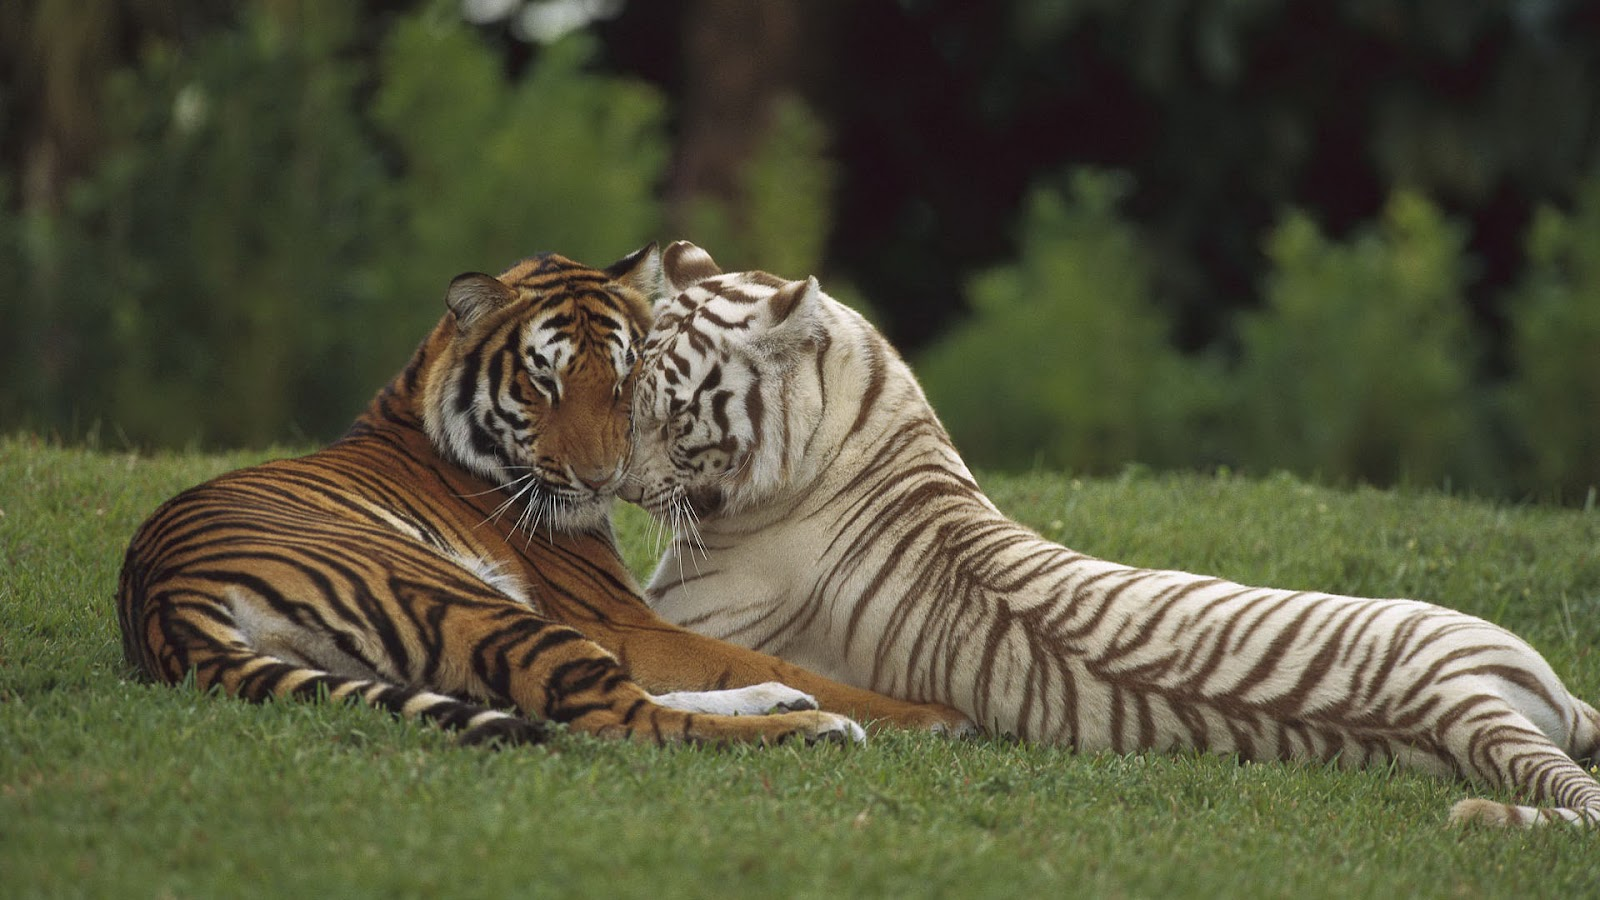 HD animal wallpaper with two cuddling tigers HD tigers wallpapers 1600x900